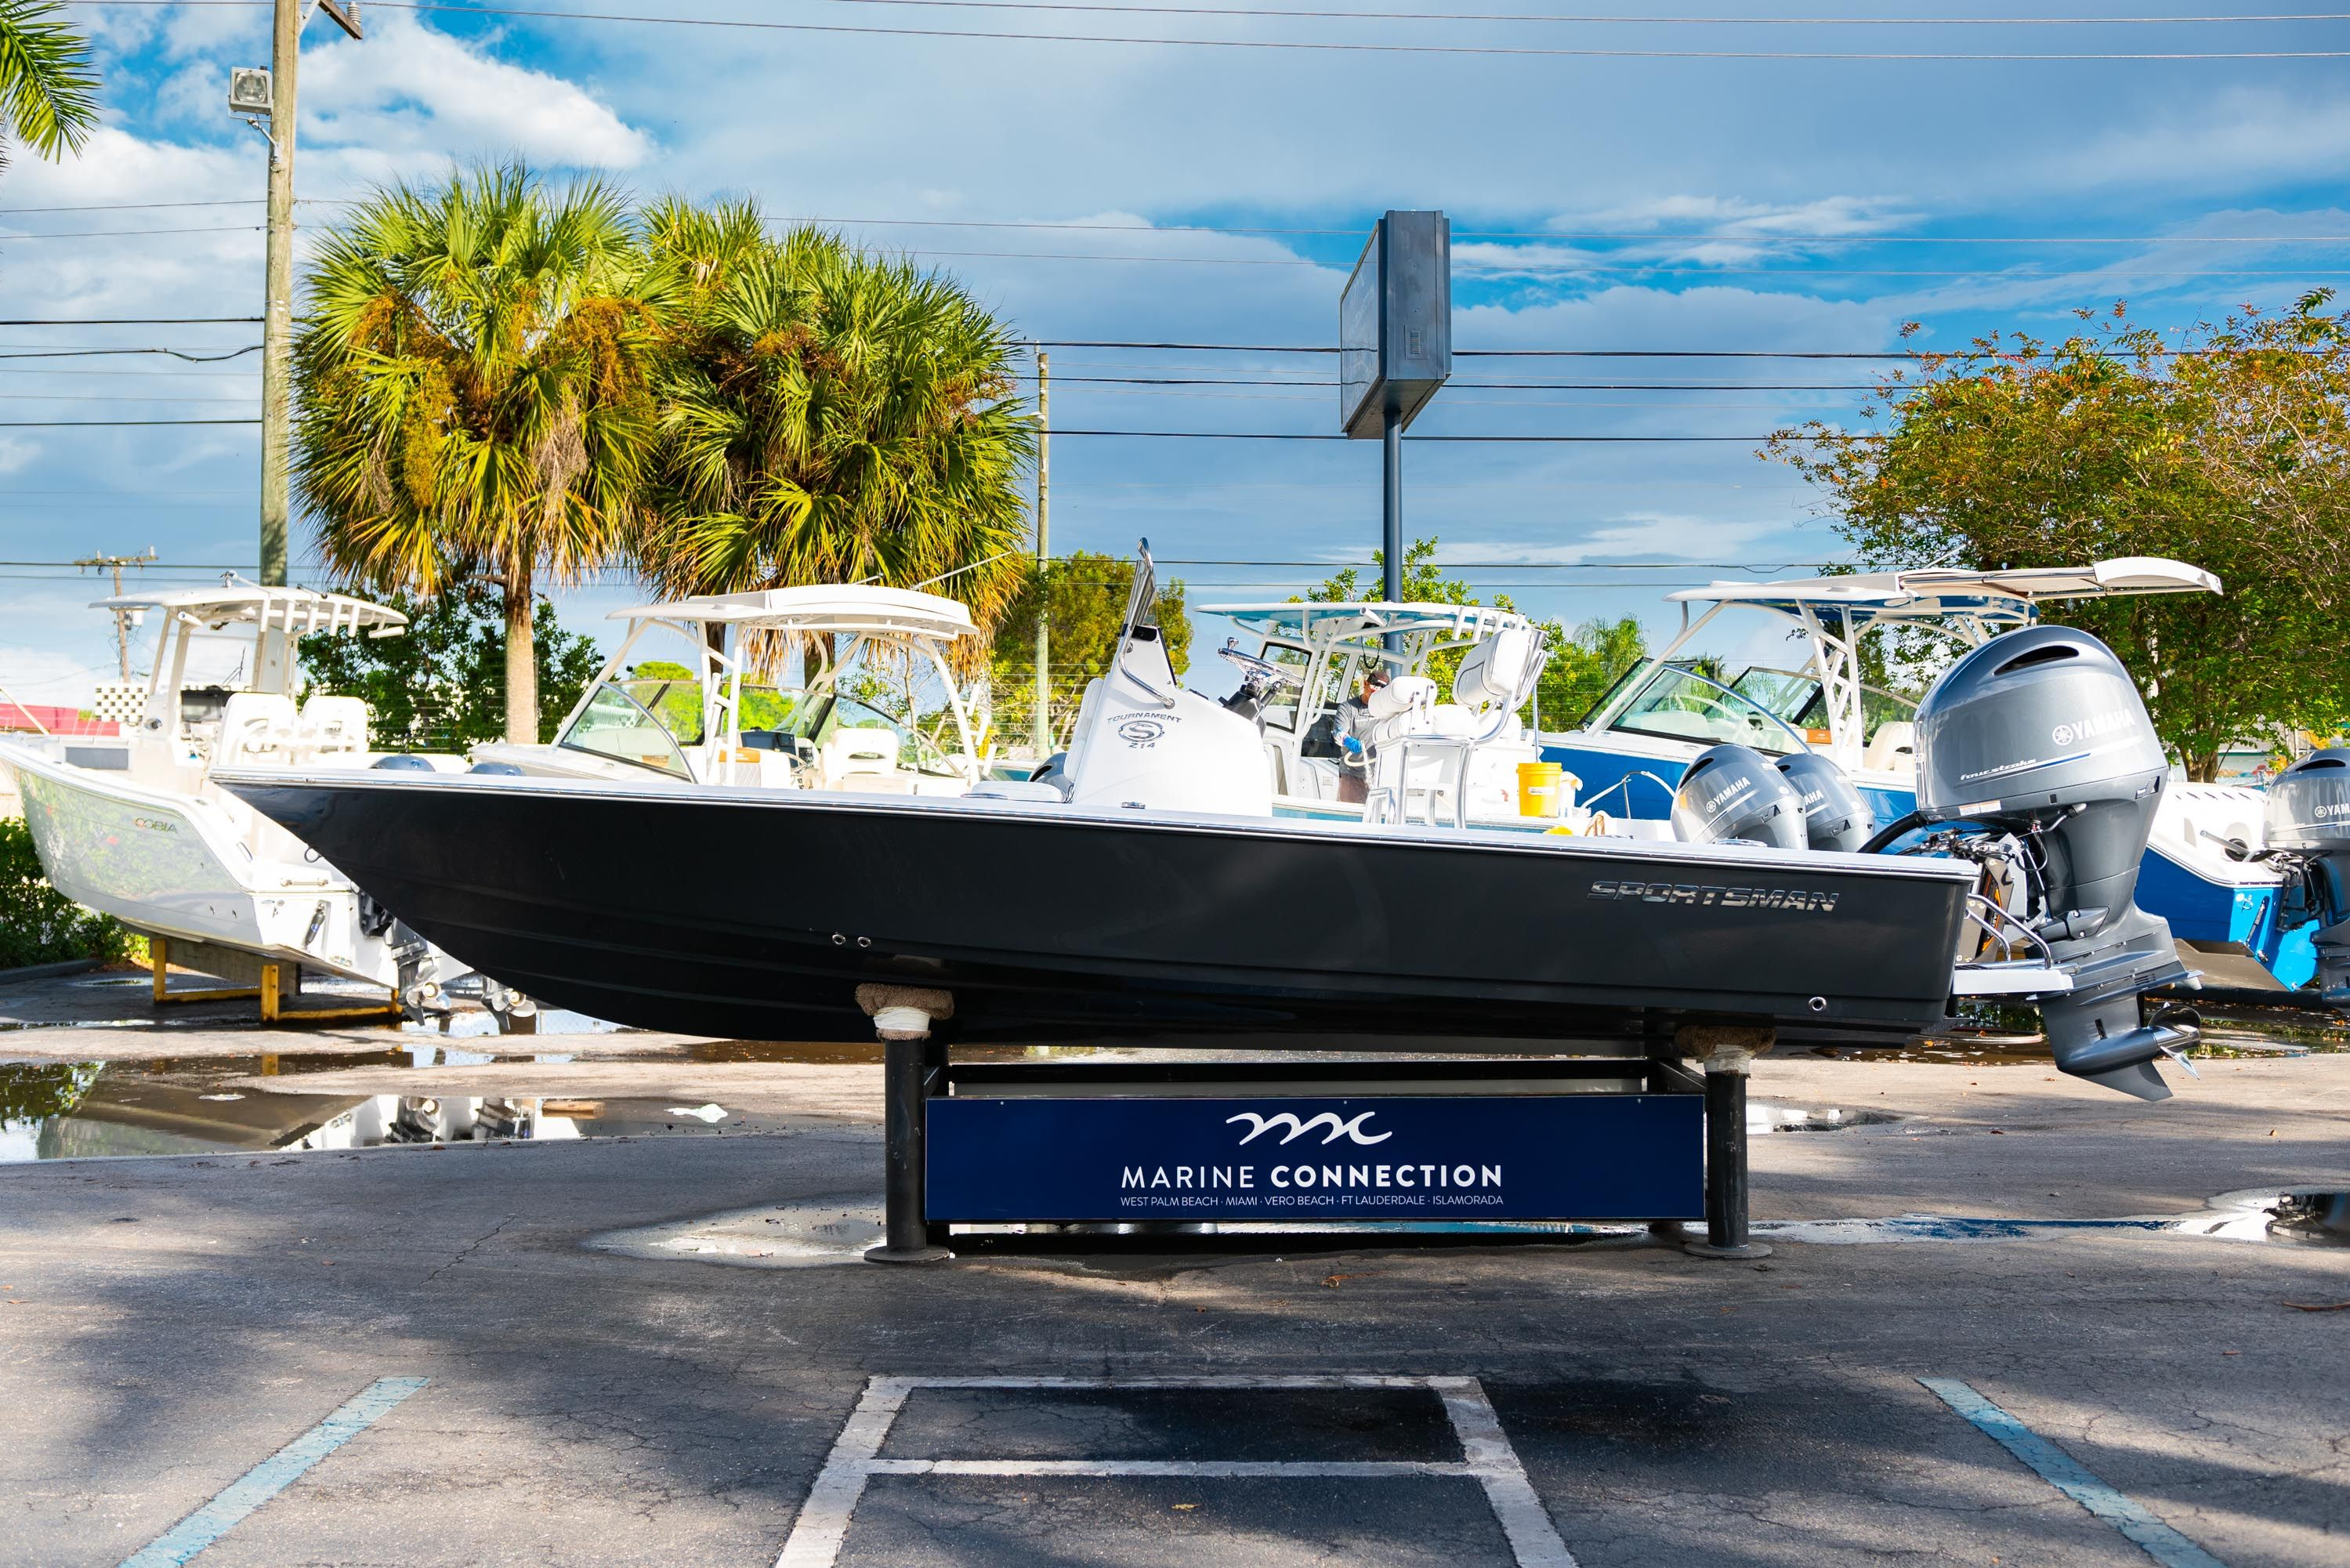 Thumbnail 4 for New 2020 Sportsman Tournament 214 Bay Boat boat for sale in West Palm Beach, FL